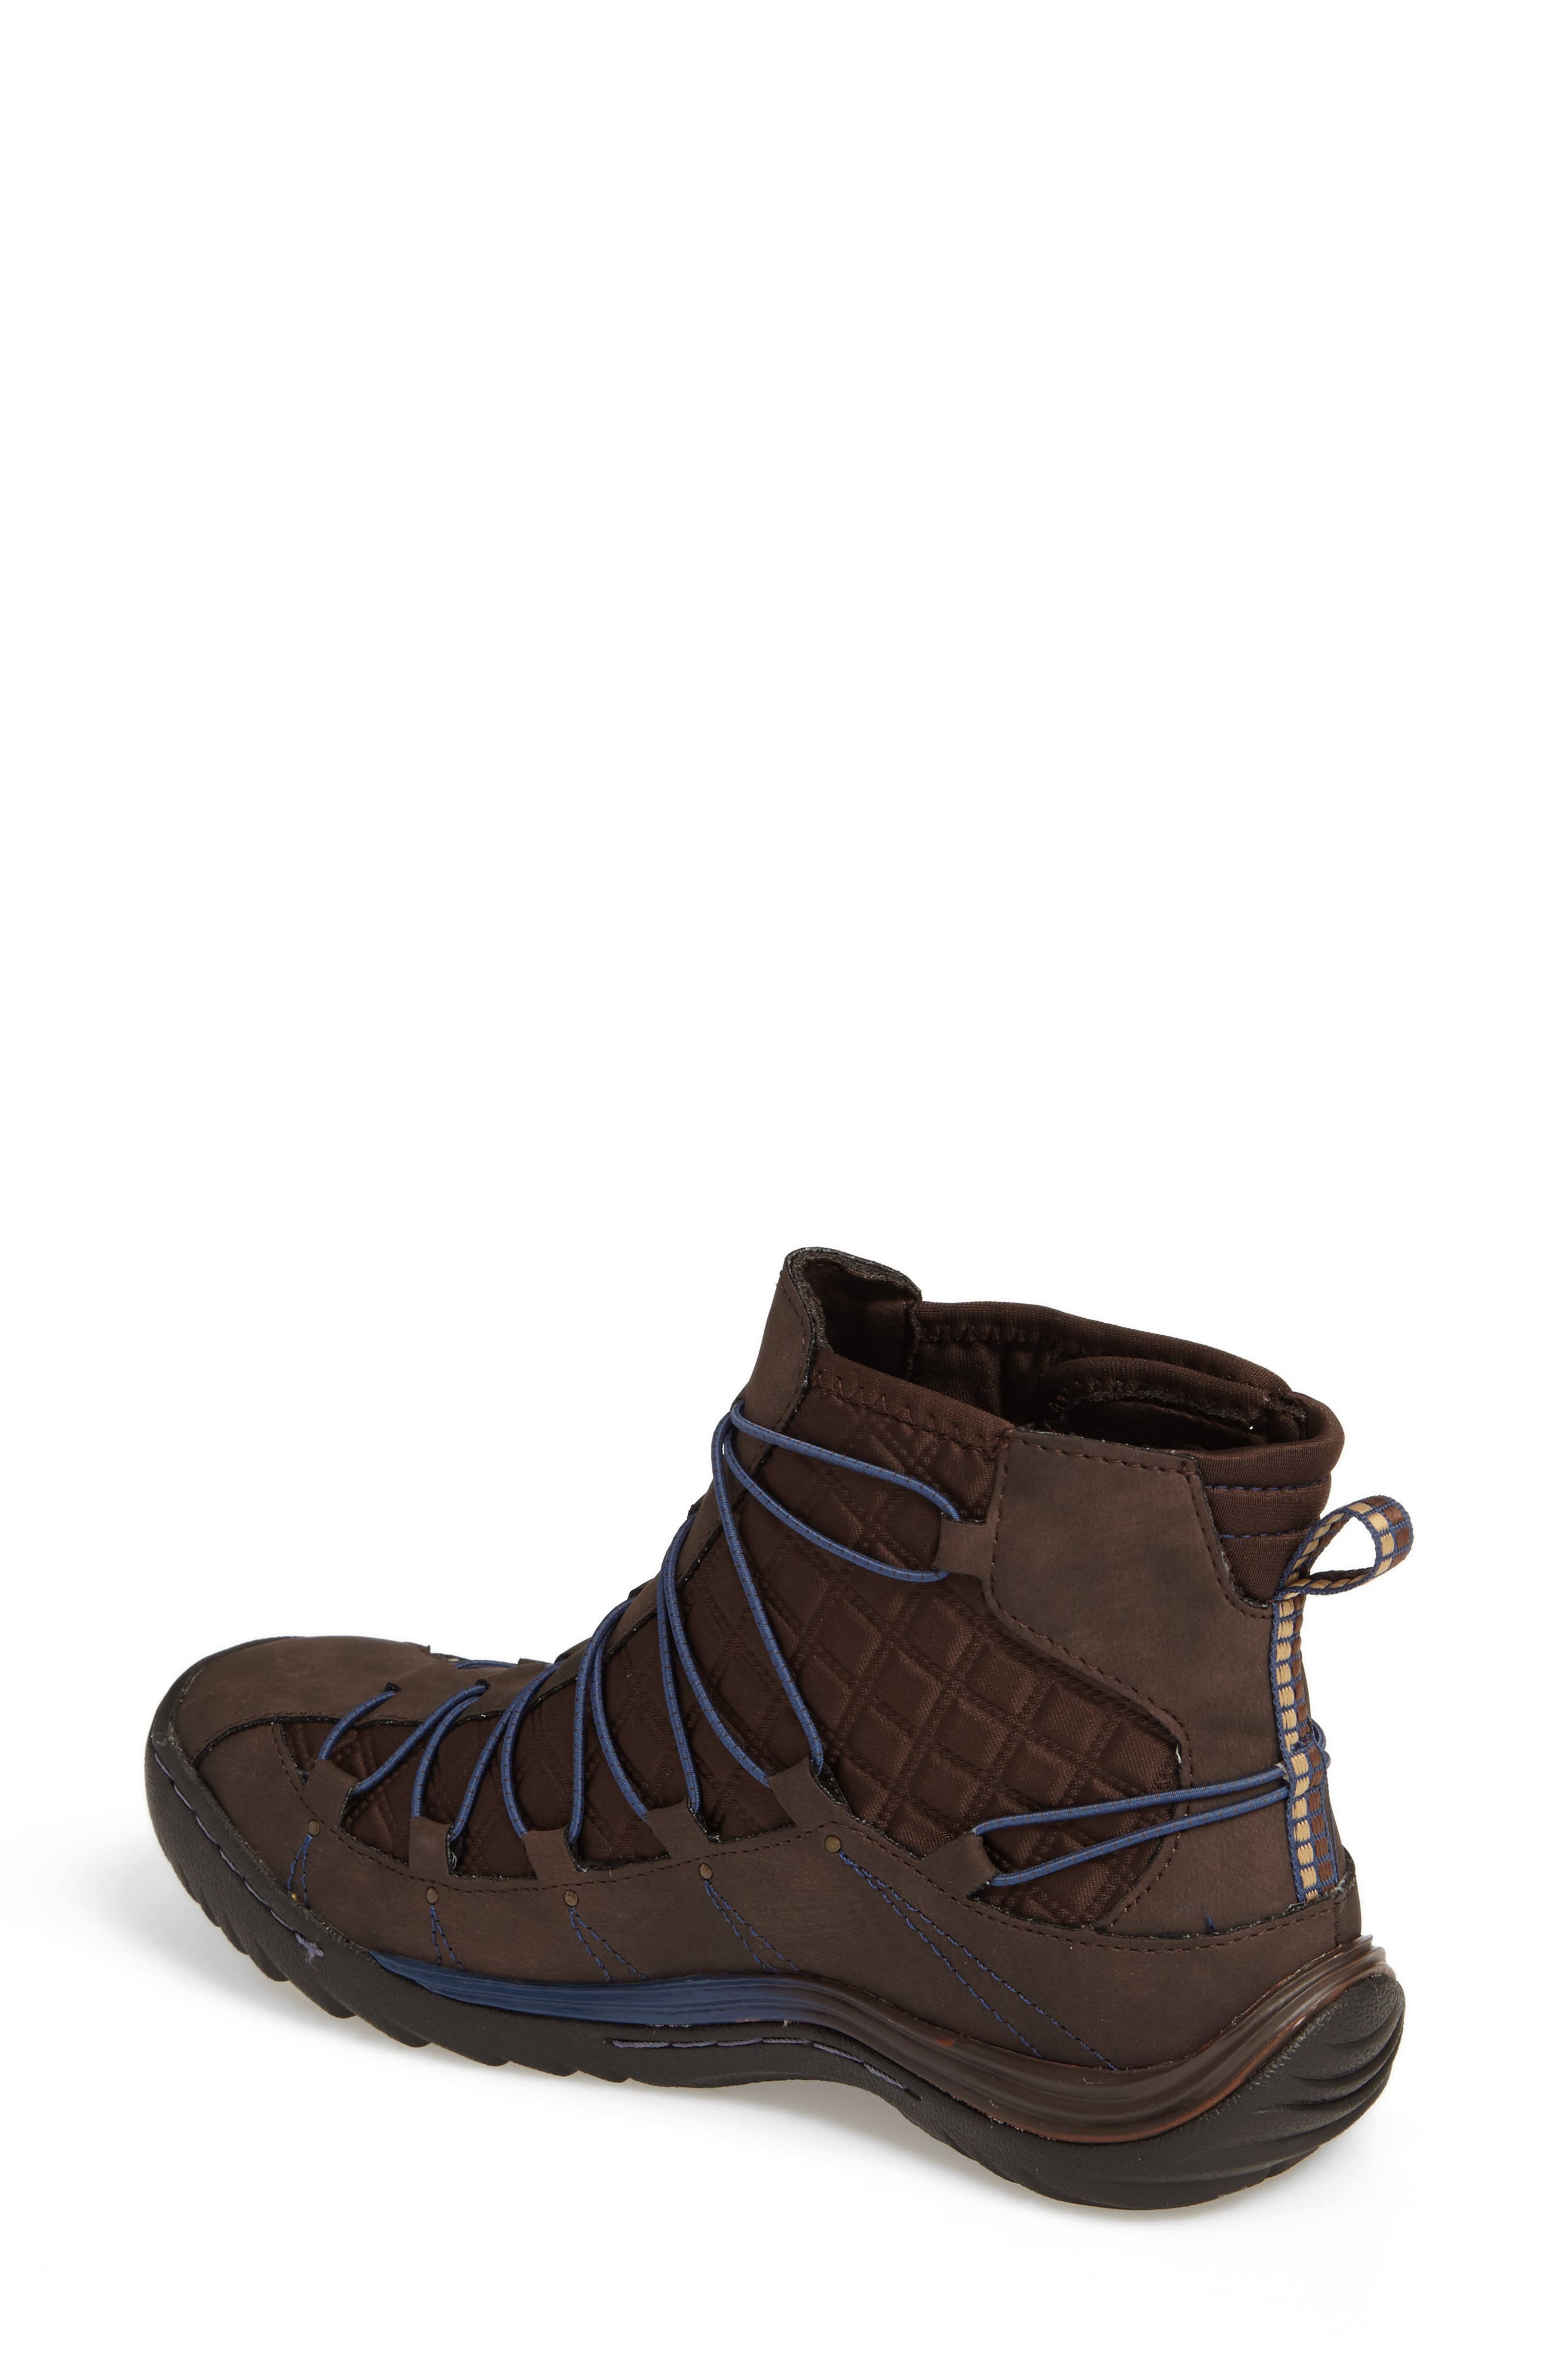 Spirit Water Resistant Bootie,                             Alternate thumbnail 2, color,                             Brown Textile